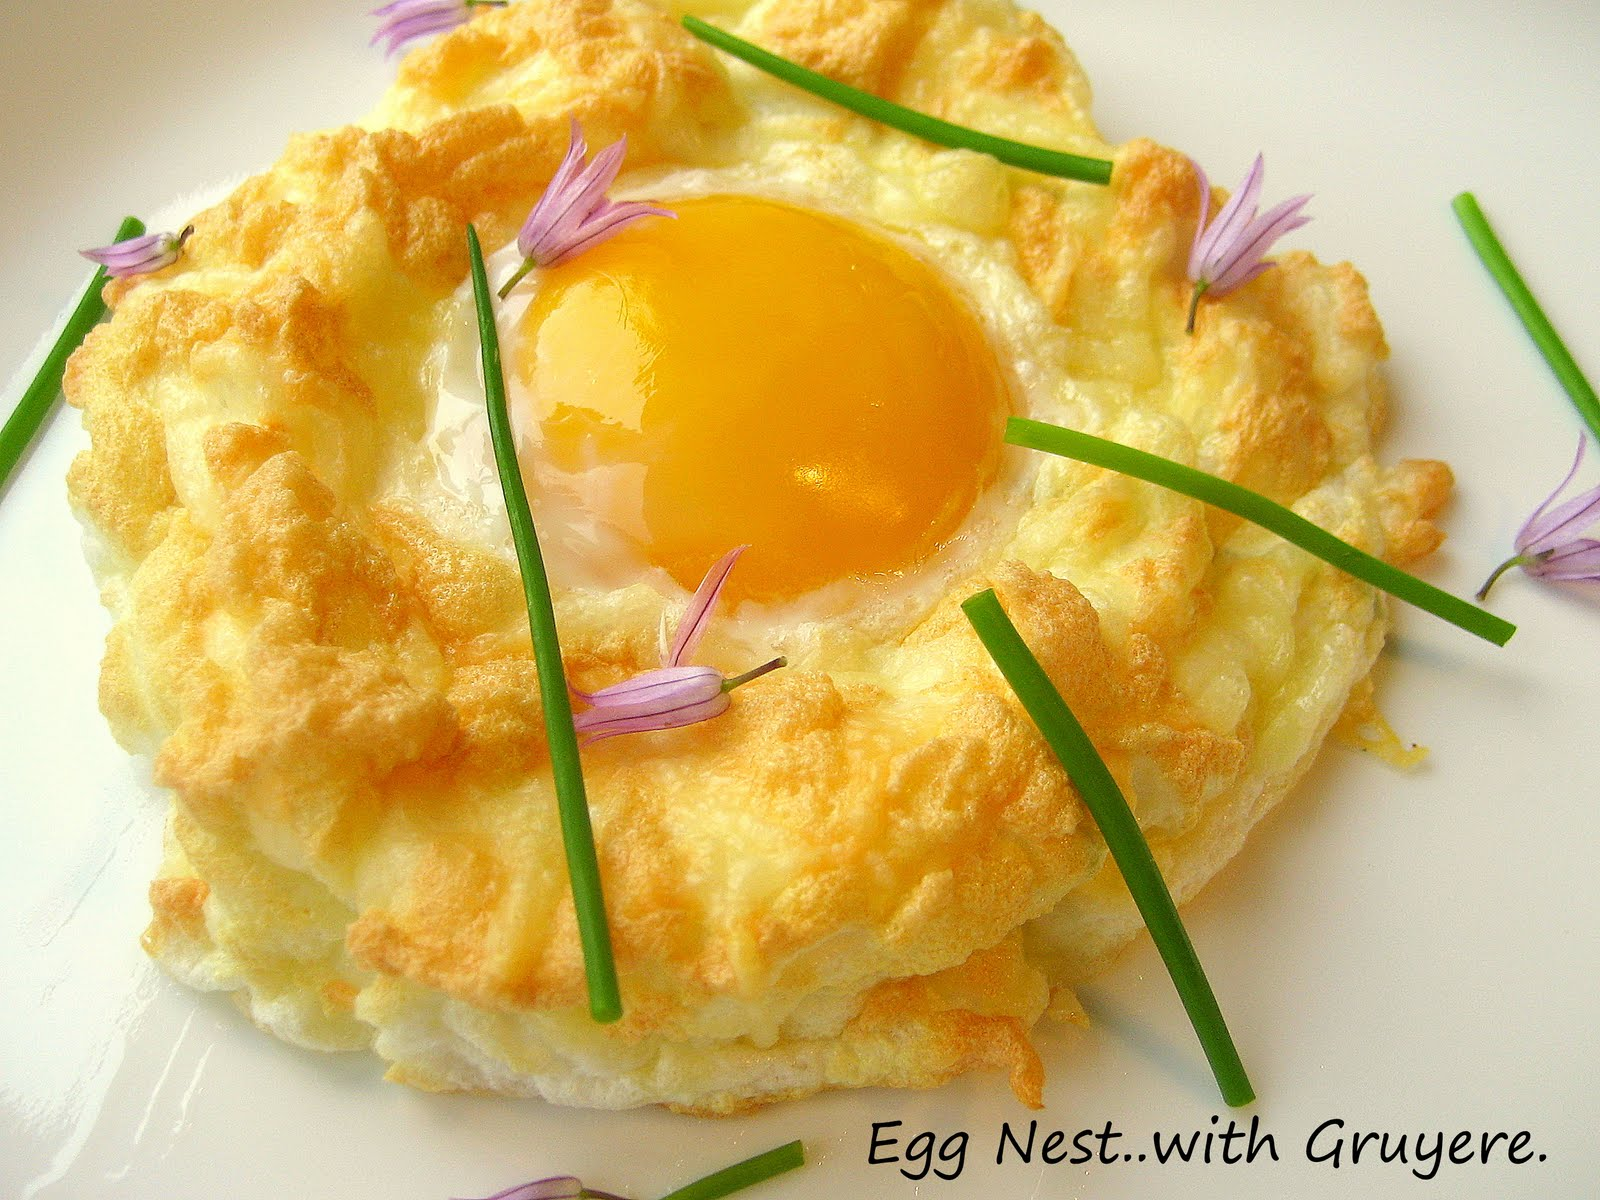 french egg nests with gruyere cheese i love love eggs and i really